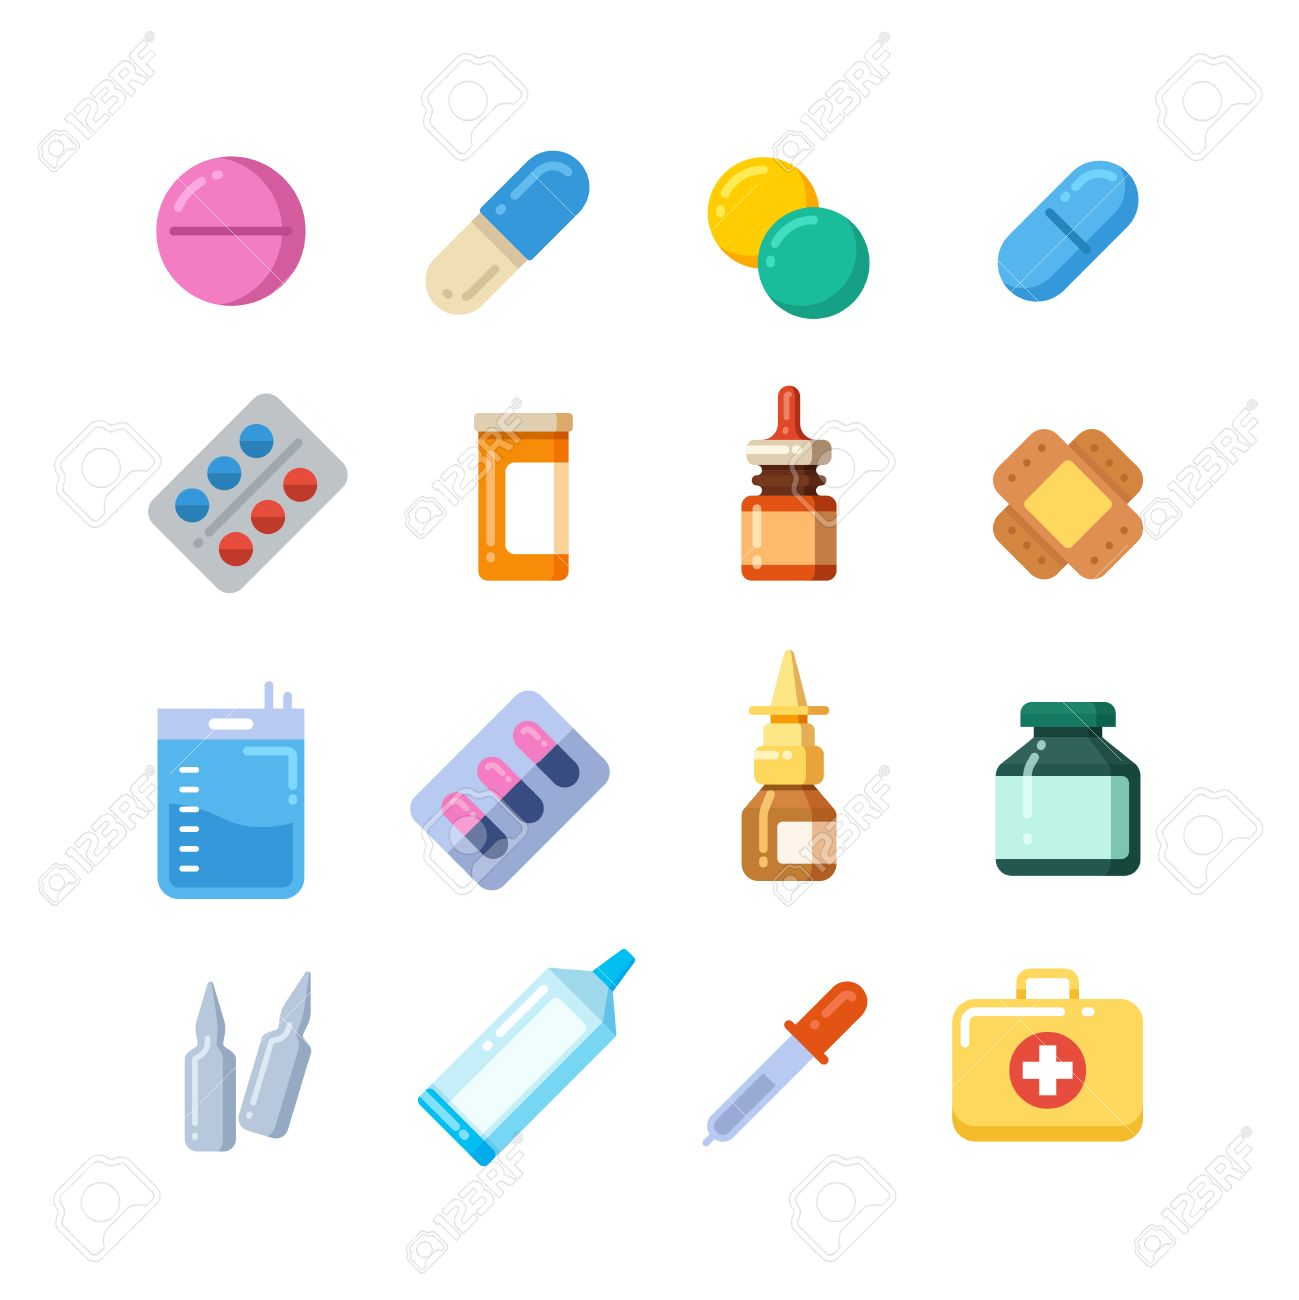 Image result for medication cartoon images